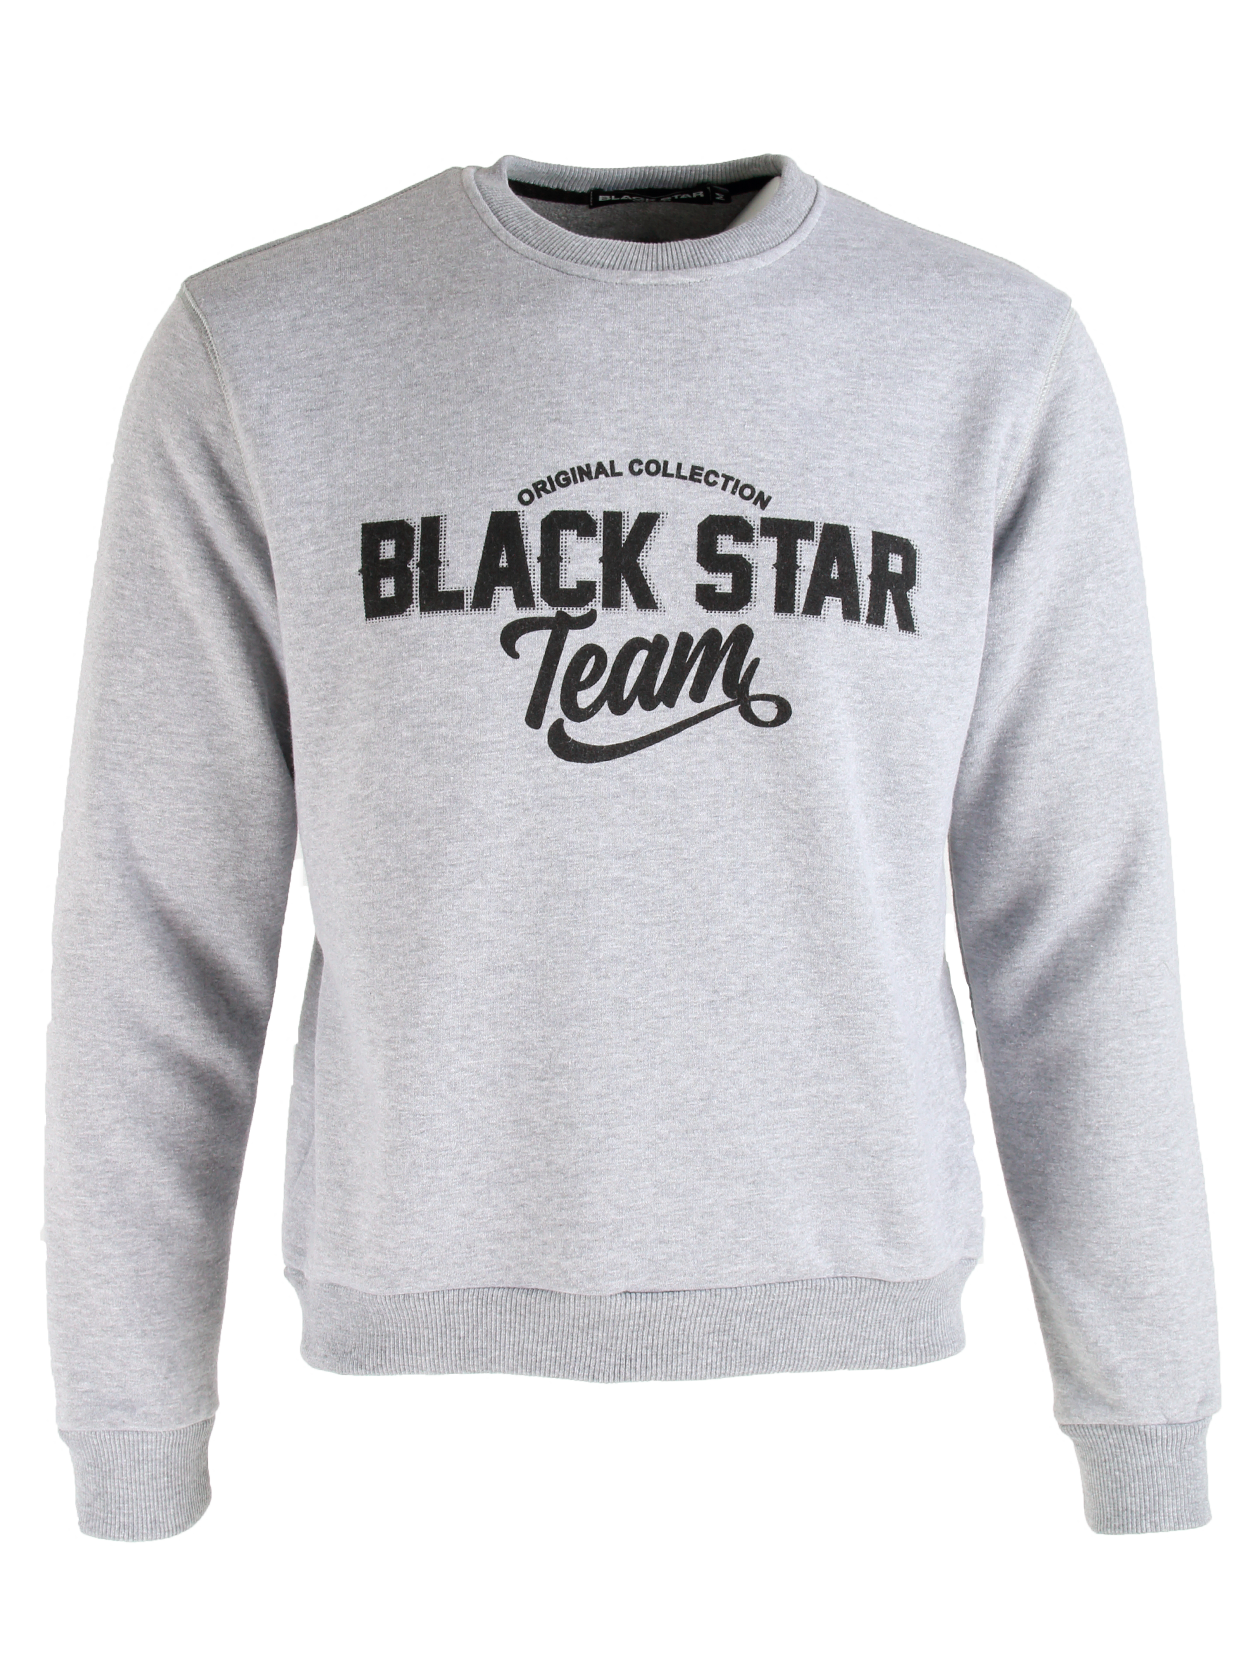 Mens sweatsuit Black Star TeamMens sweatshirt and sweatpants set by Black Star Wear. Sweatshirt with o-neck, cuffs, big print Original Collection Black Star Team and lions head on the back. Sweatpants with side pockets and Original Collection Black Star Team print on the left side. Regular fit, natural cotton. Avaliable in gray.<br><br>size: S<br>color: Grey<br>gender: male